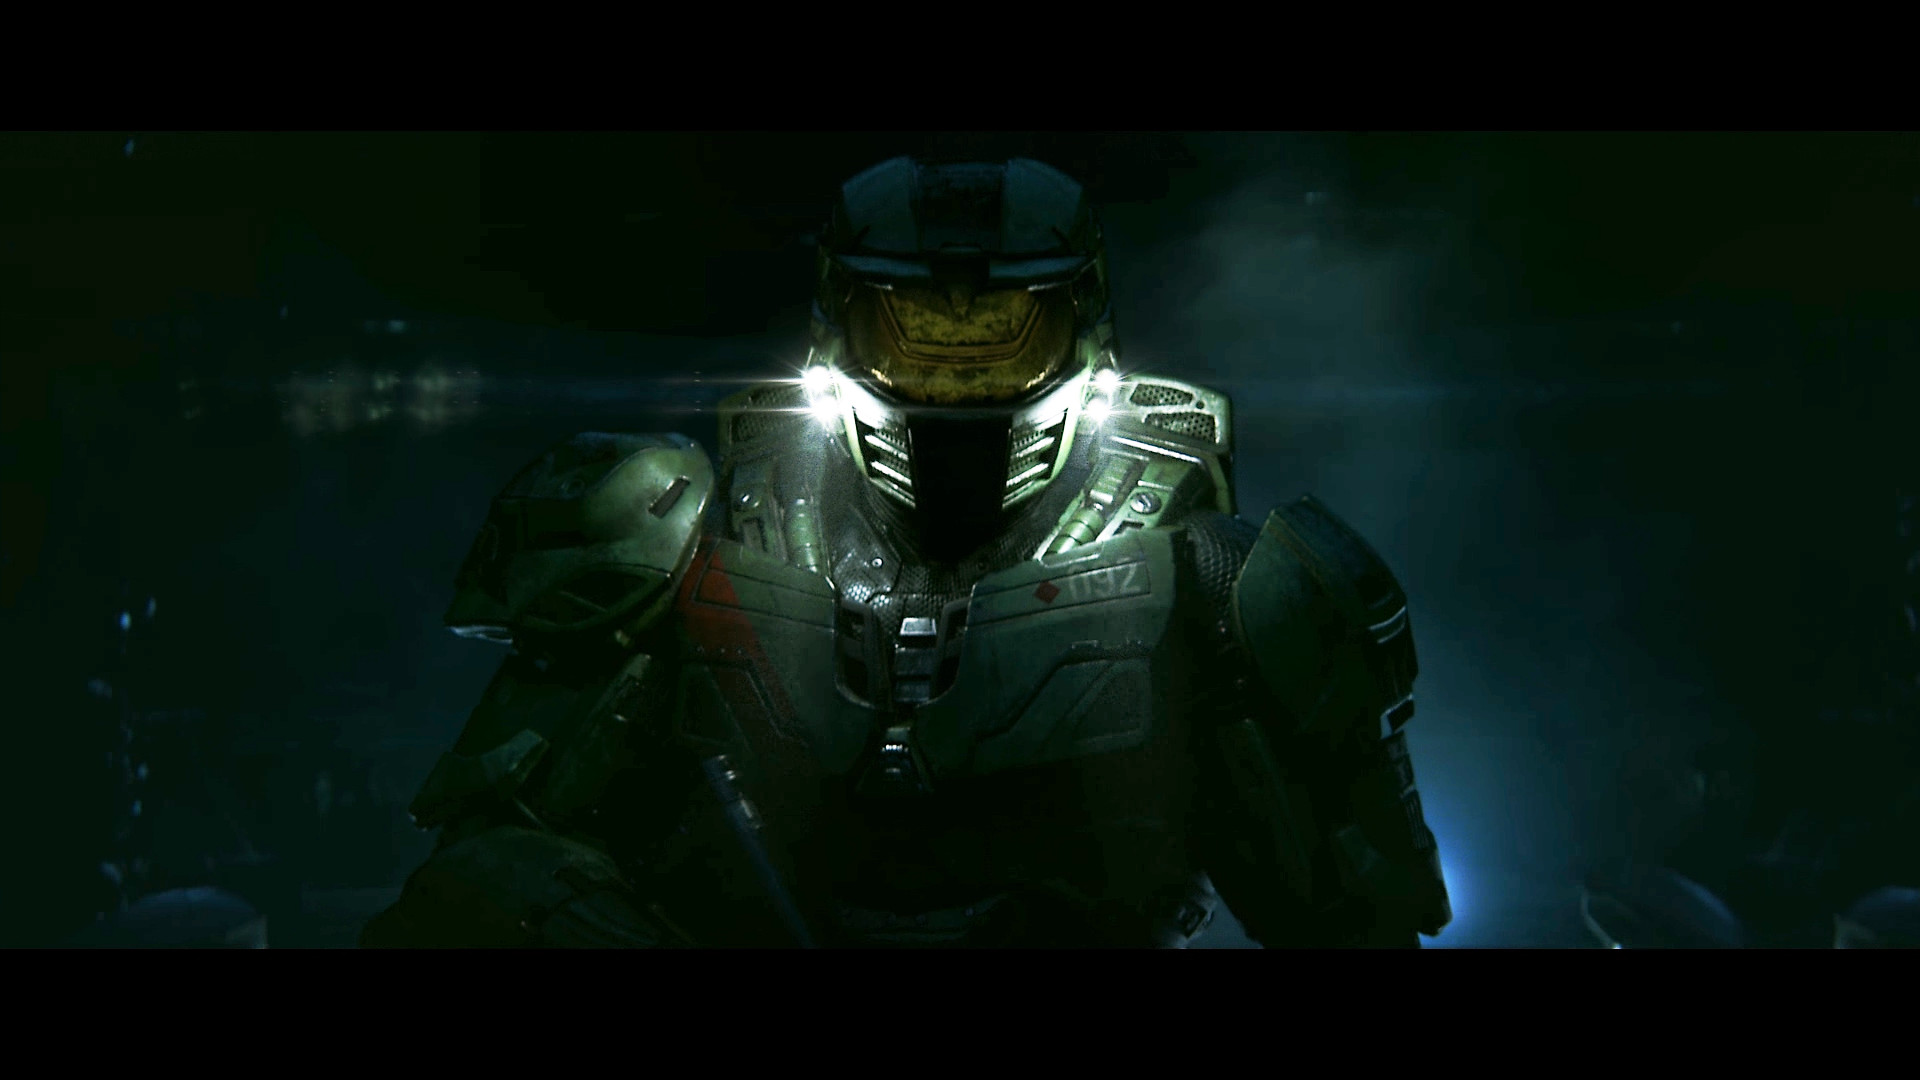 Res: 1920x1080, UNSC Spartan Jerome-092 [Halo Wars 2] ...